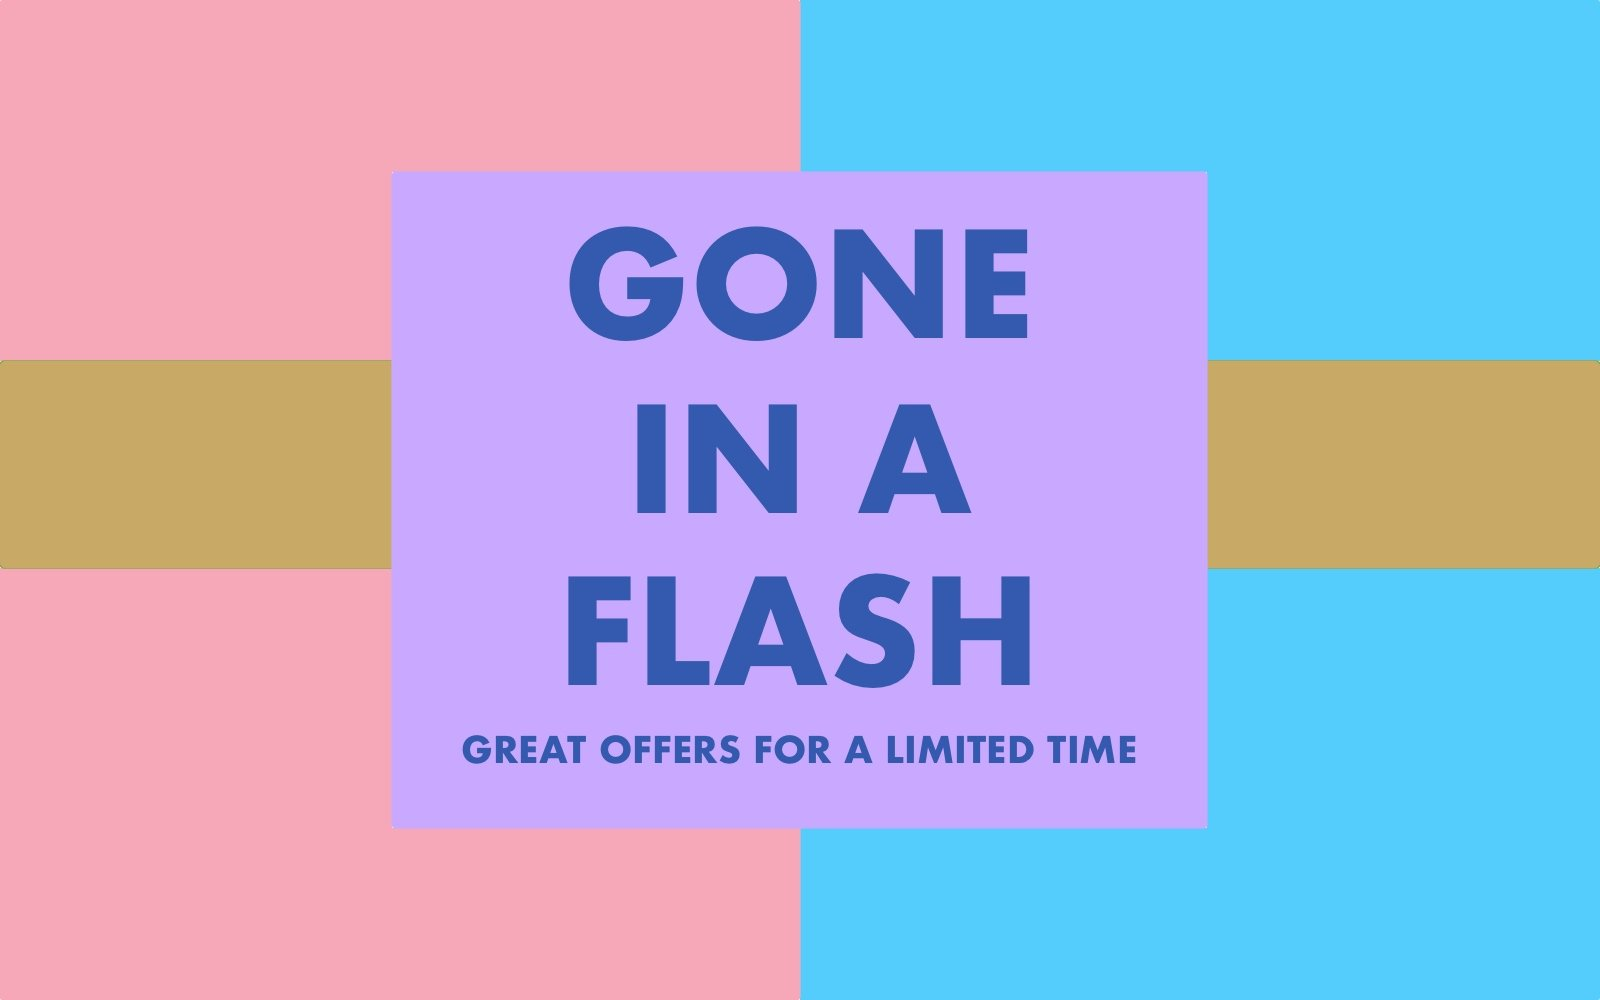 Gone in a Flash - Great Offers for A Limited Time